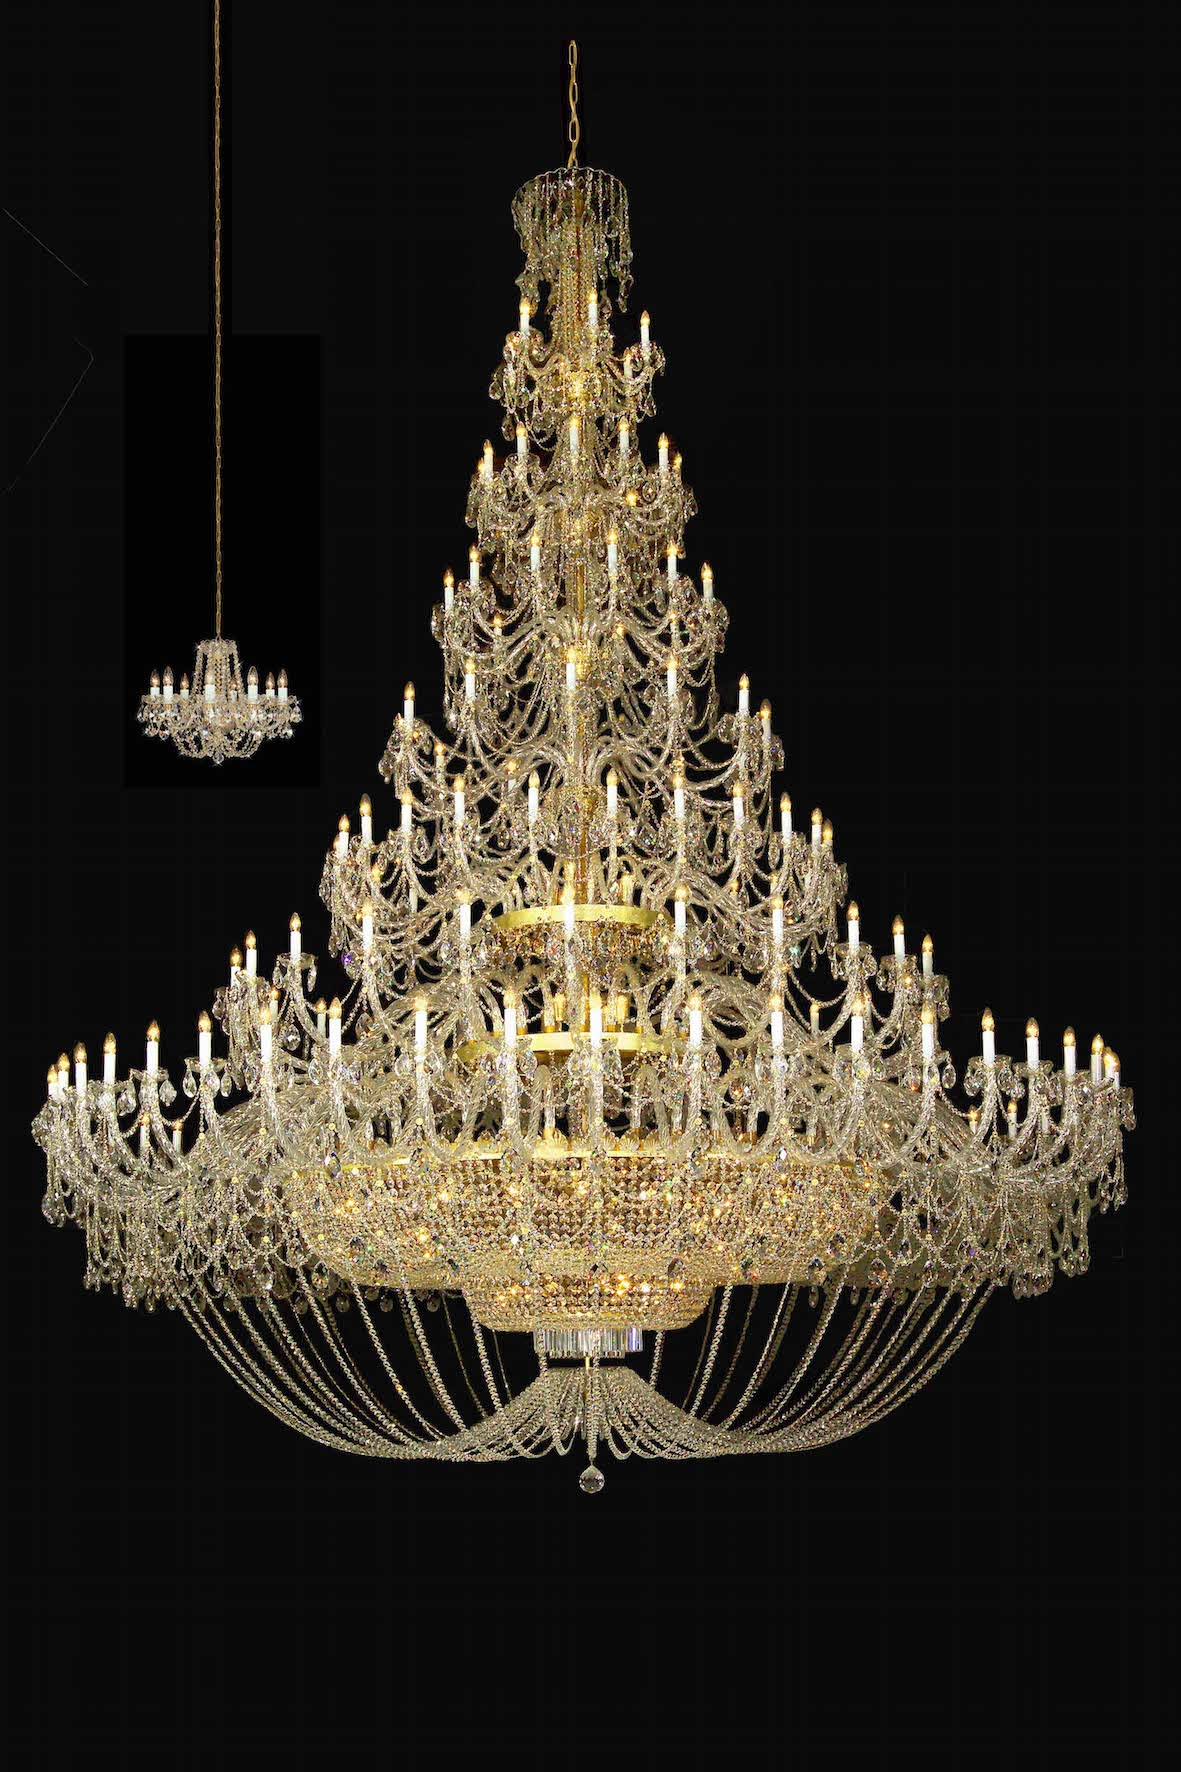 The Big Chandelier News Quality Czech Crystal Chandeliers And Intended For Big Crystal Chandelier (#10 of 12)